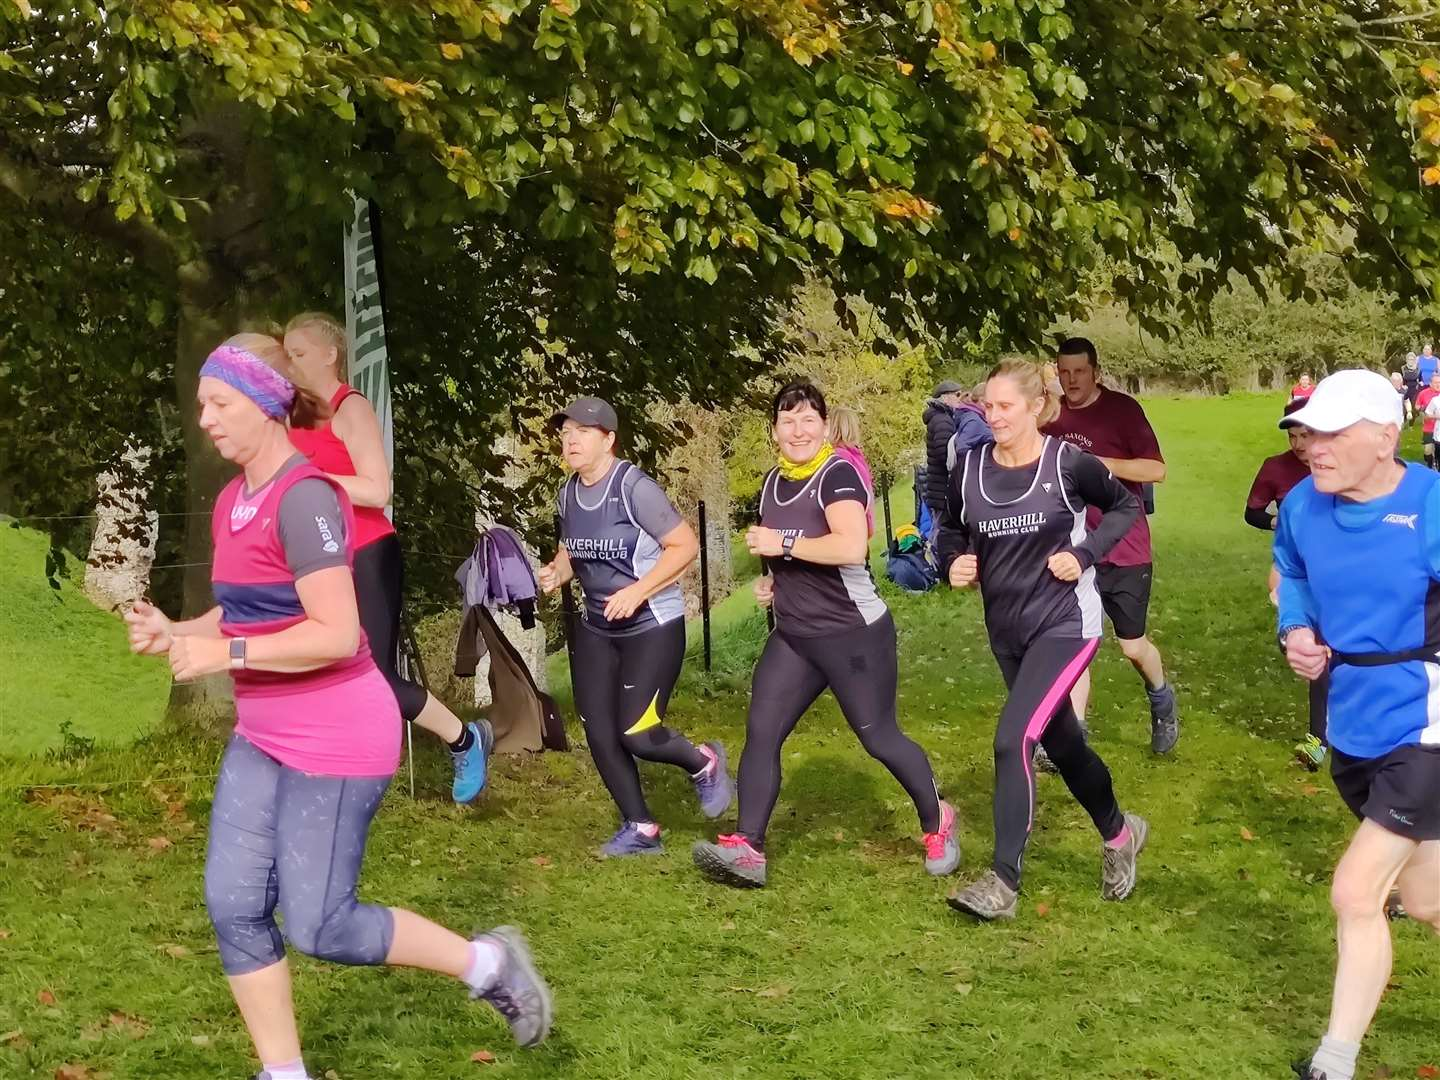 Haverhill Running Club take part in first fixture of 2019/20 Suffolk Winter Cross Country League (20890528)